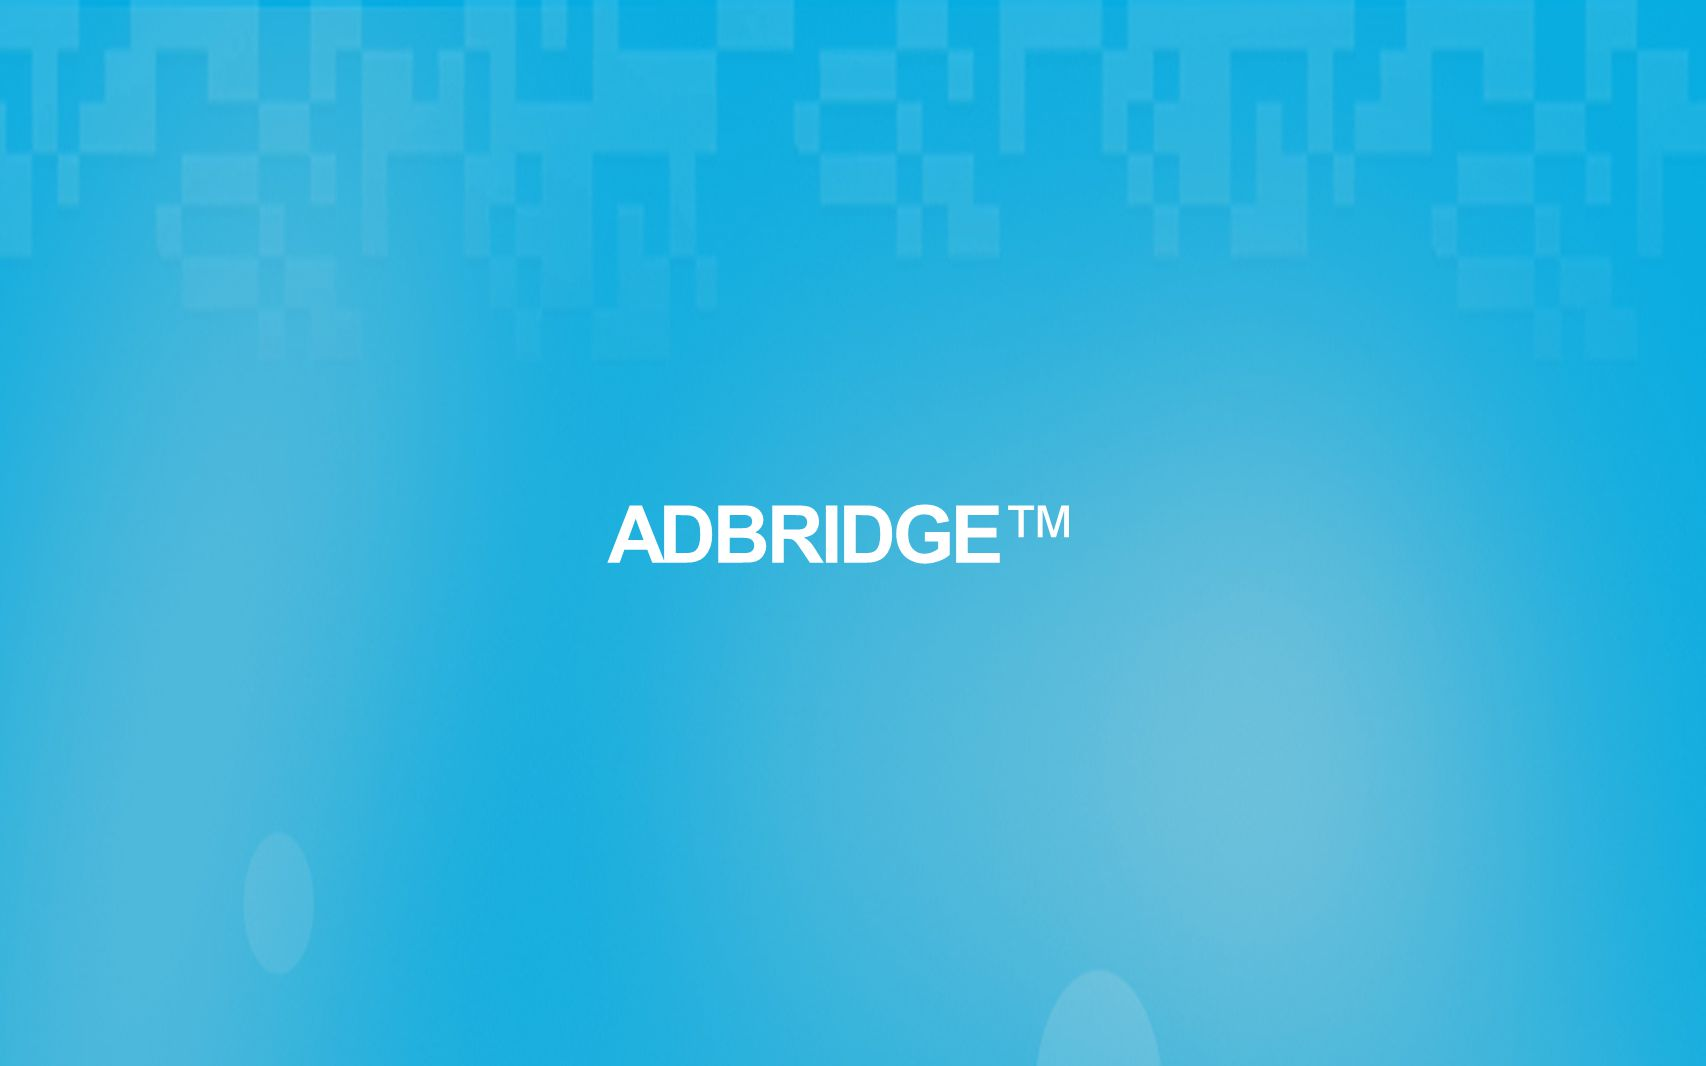 Adbridge, wat is het ADBRIDGE™